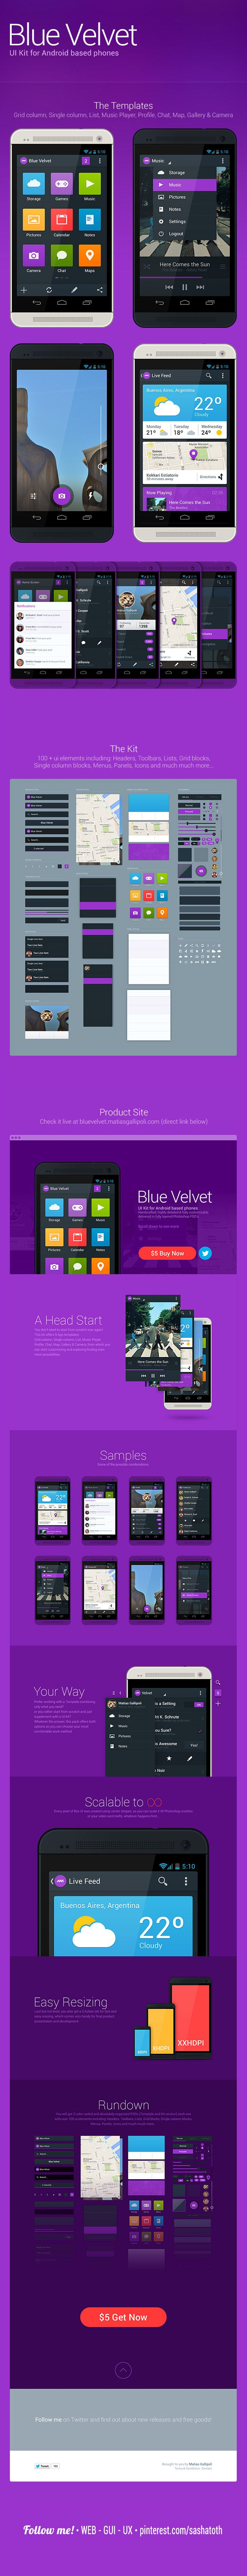 Blue Velvet UI Kit by Matias Gallipoli, via Behance *** Blue Velvet, a handcraft…